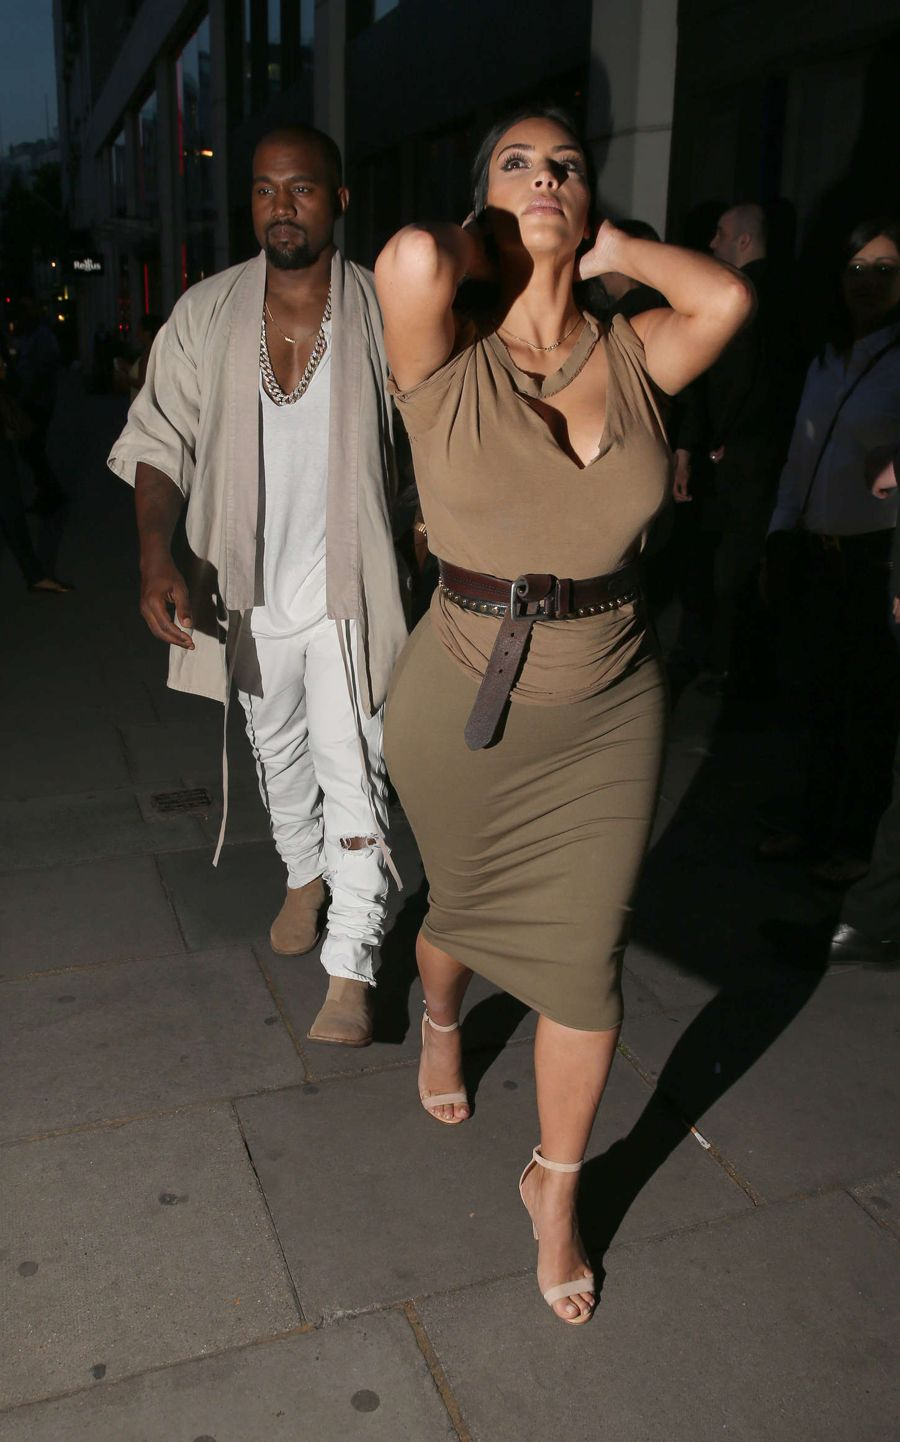 Kim Kardashian Date Night with Kanye West in London